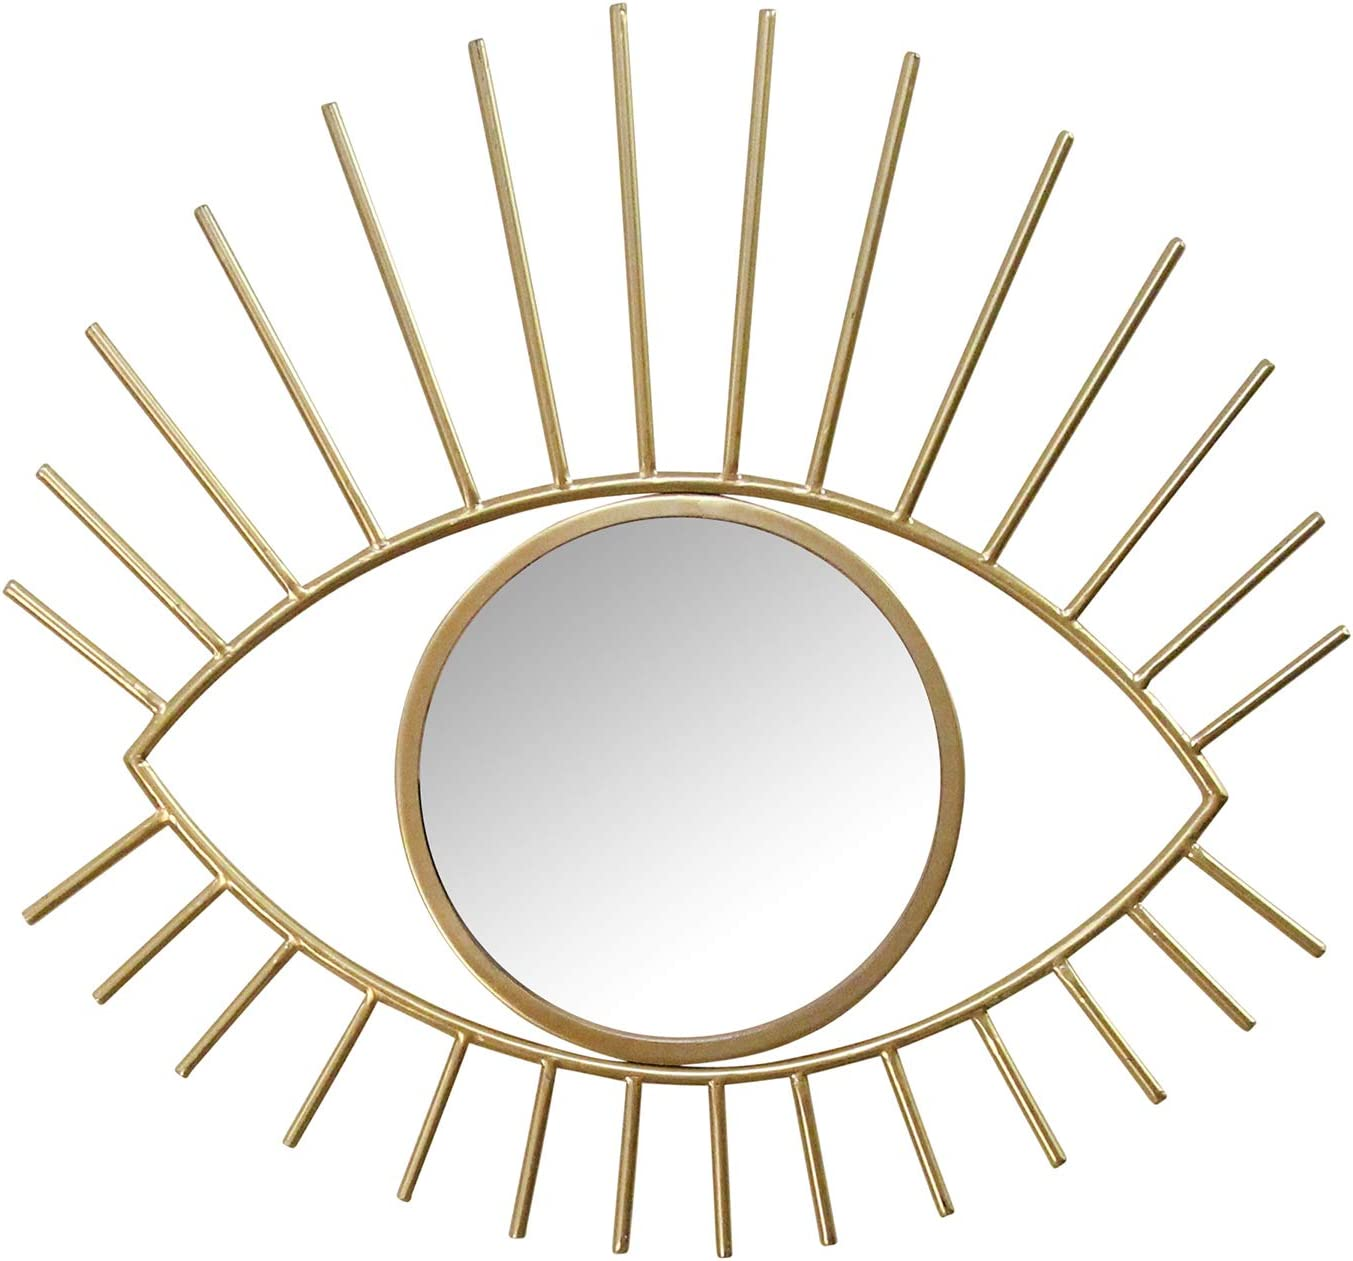 Stratton Home Décor Stratton Home Decor Gold Metal Eye Wall Mirror